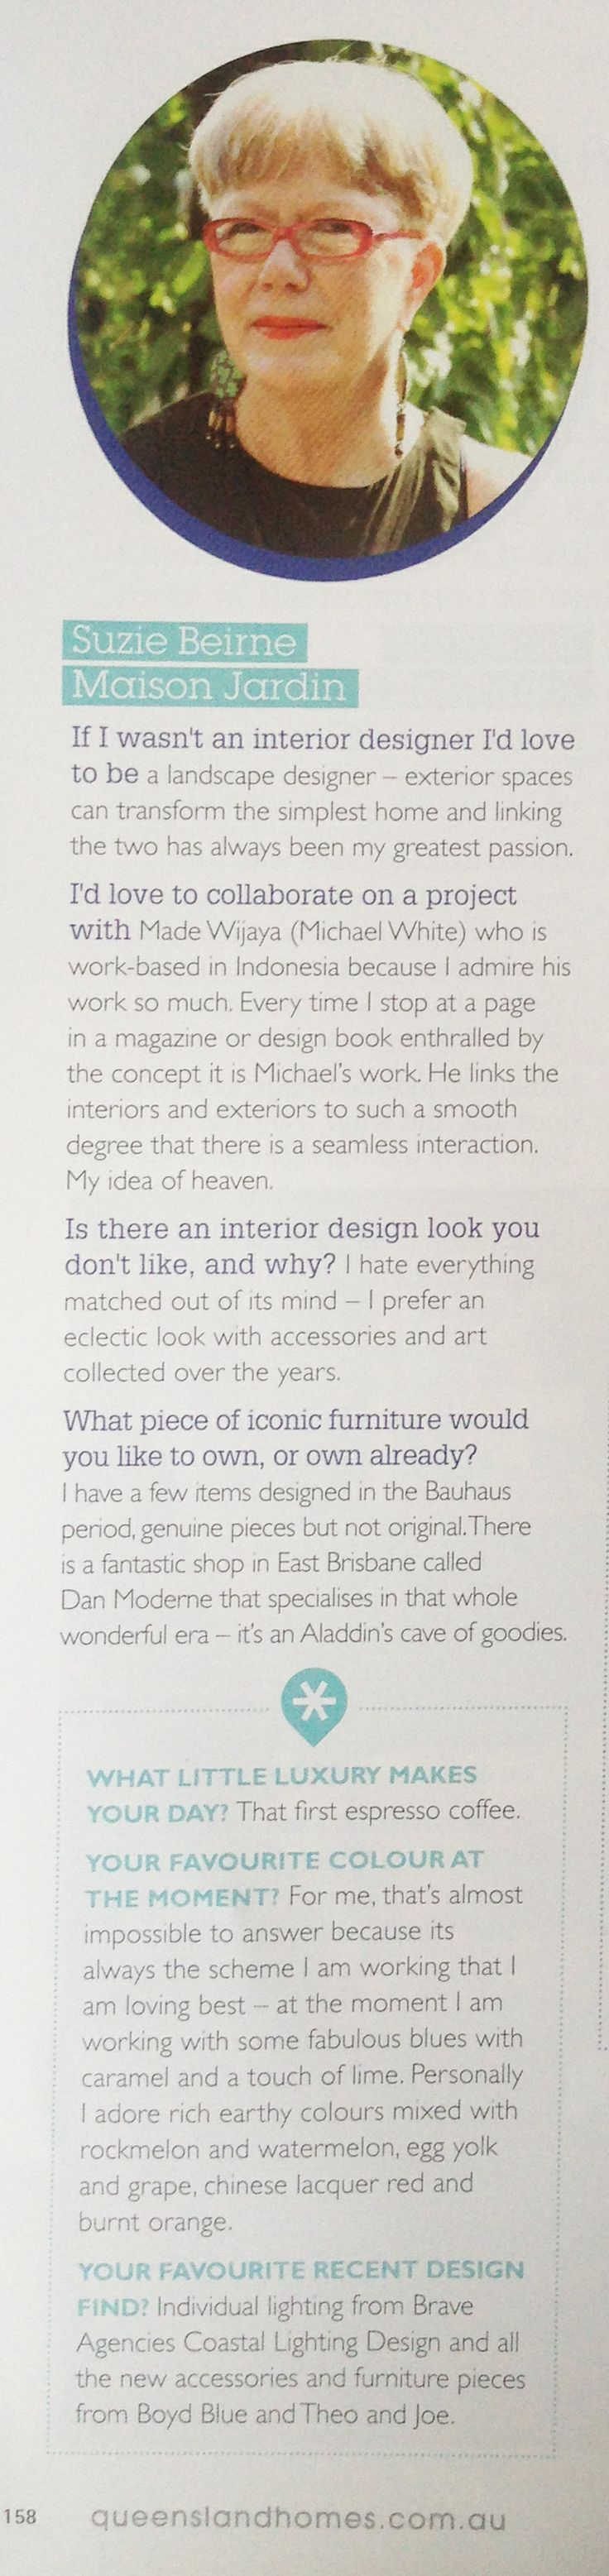 Suzie Beirne, Director of Maison Jardin appears in this months Queensland Homes - Interior Designers Q&A.  See our ad on page 154 http://www.maisonjardin.com.au